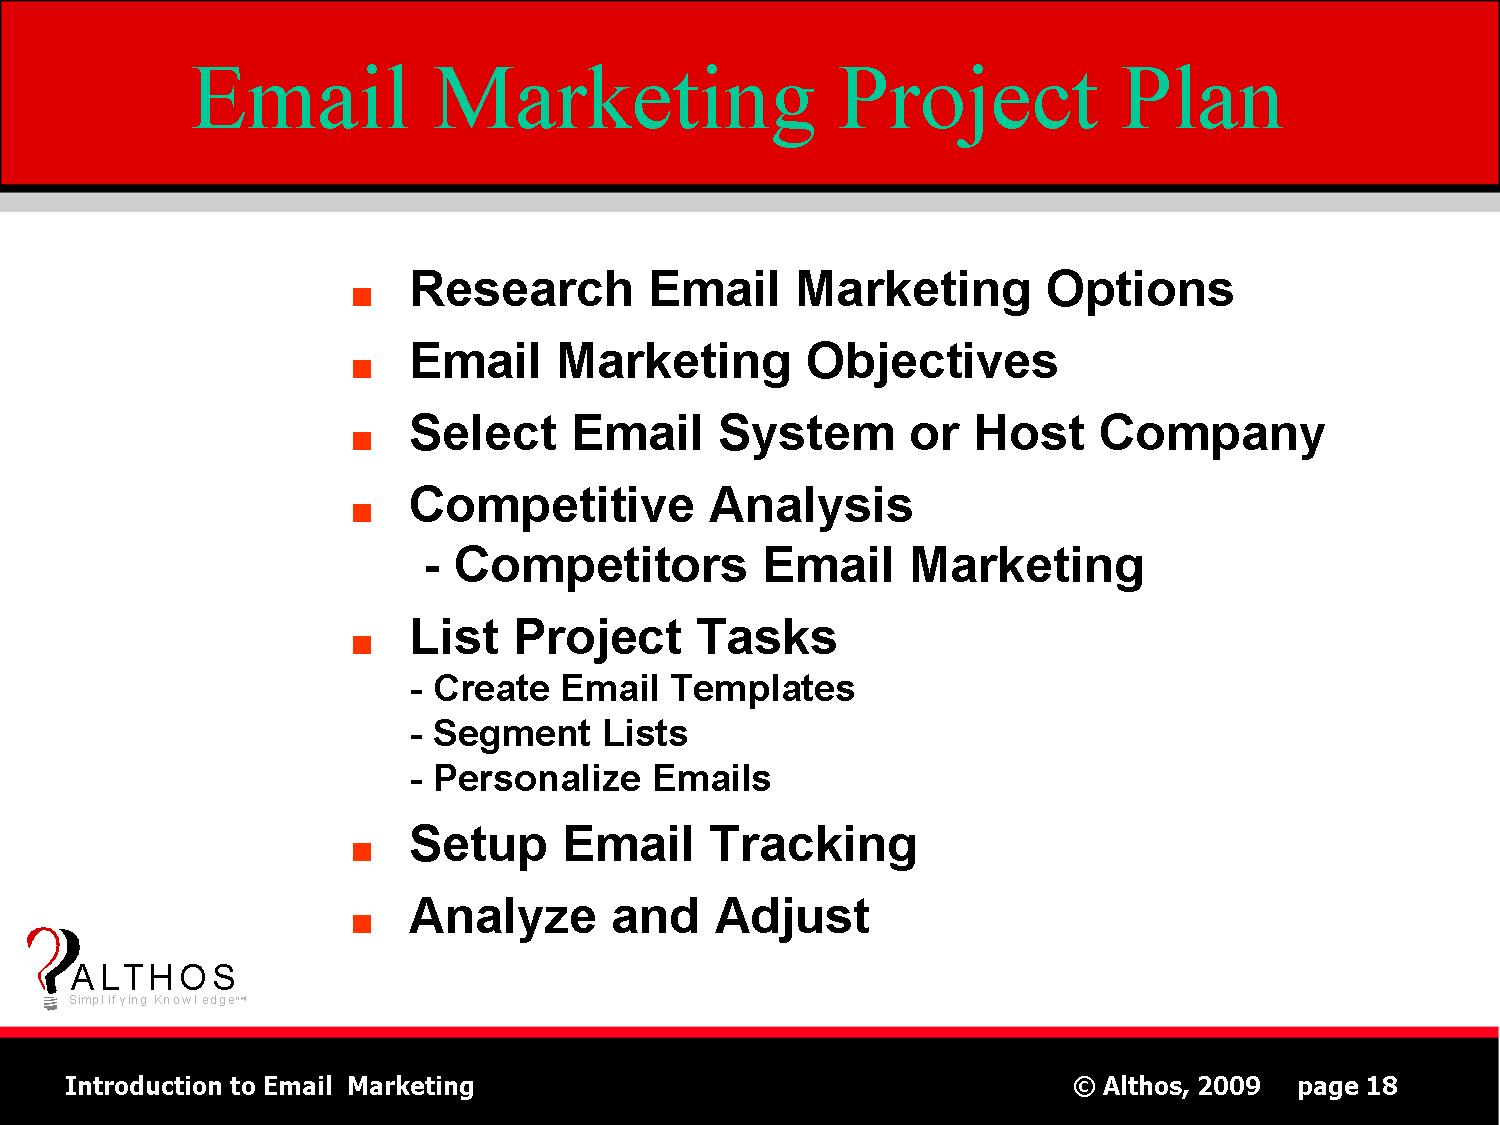 project report on marketing plan of The marketing plan improving your competitive edge a marketing plan is a written strategy for selling the products/services of a new business it is a reflection of how serious a company is in meeting the competition head on, with strategies and plans to increase market share and attract customers.